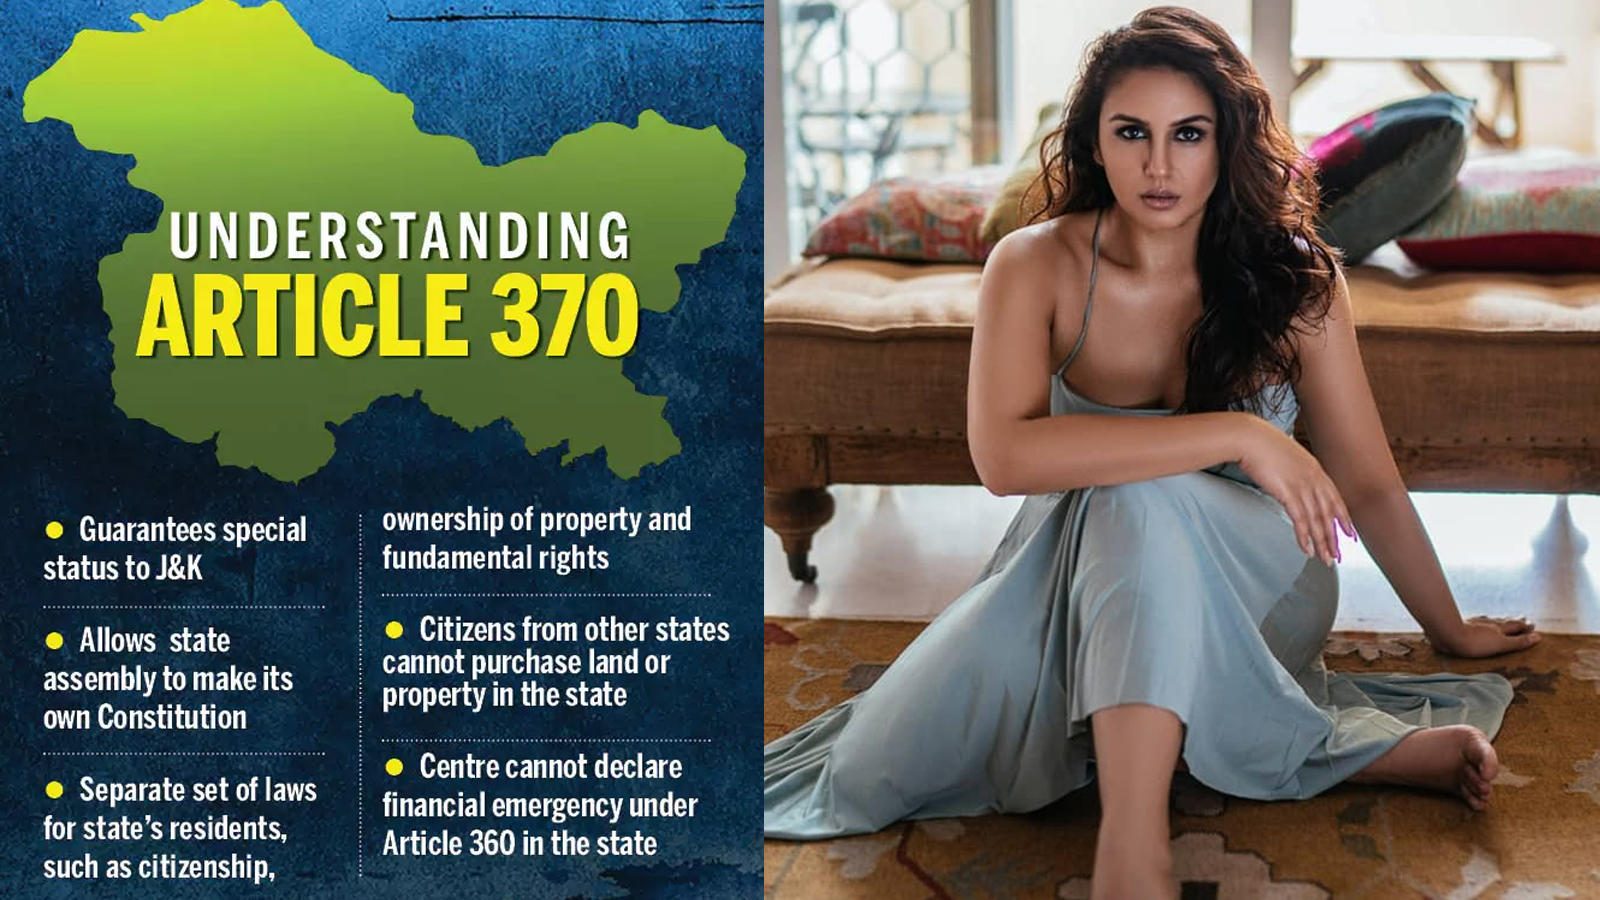 Article 370: Huma Qureshi urges people to stop irresponsible comments on Kashmir